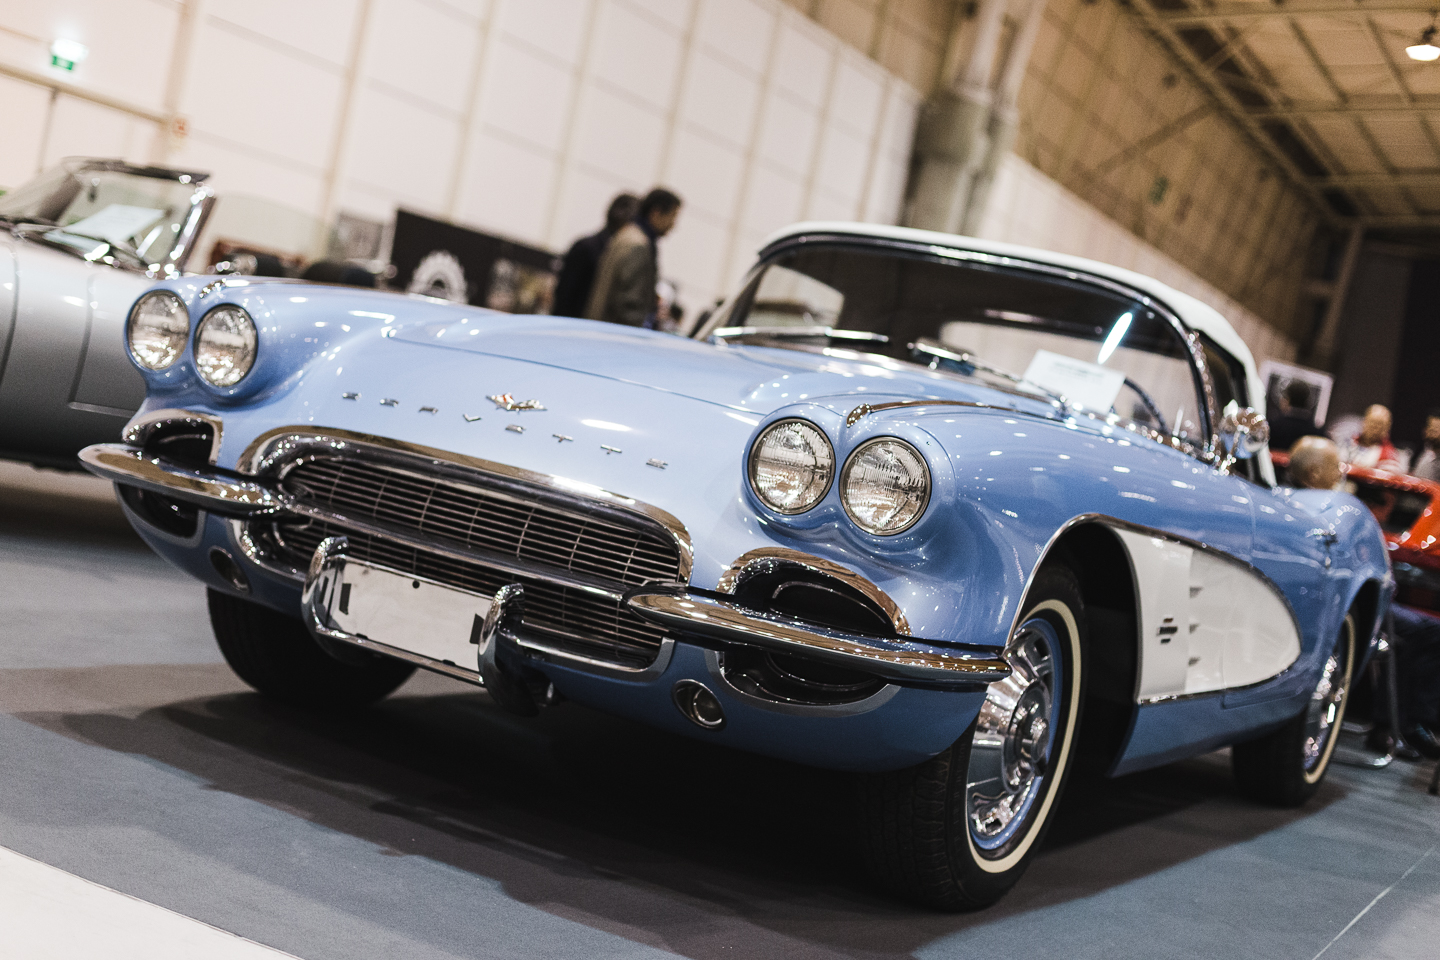 1961 Chevrolet Corvette C1 Roadster